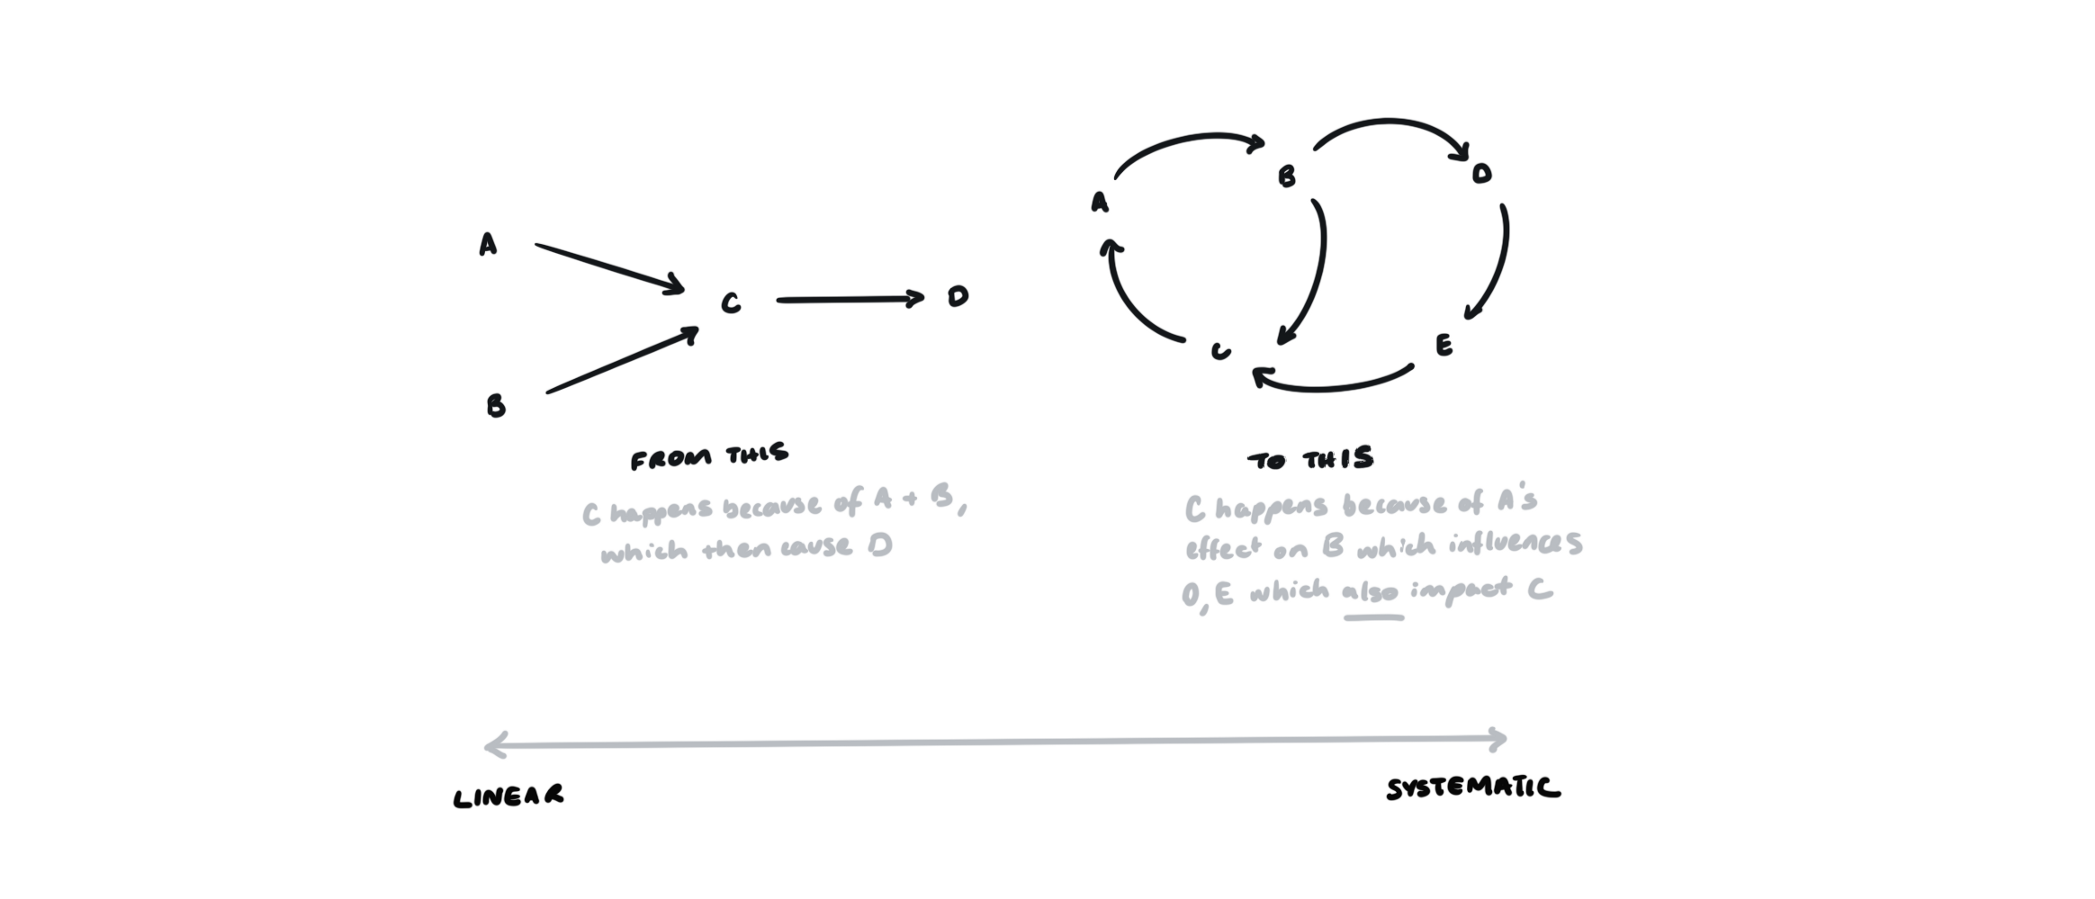 Linear Systems Thinking versus Loop Based Systems Thinking